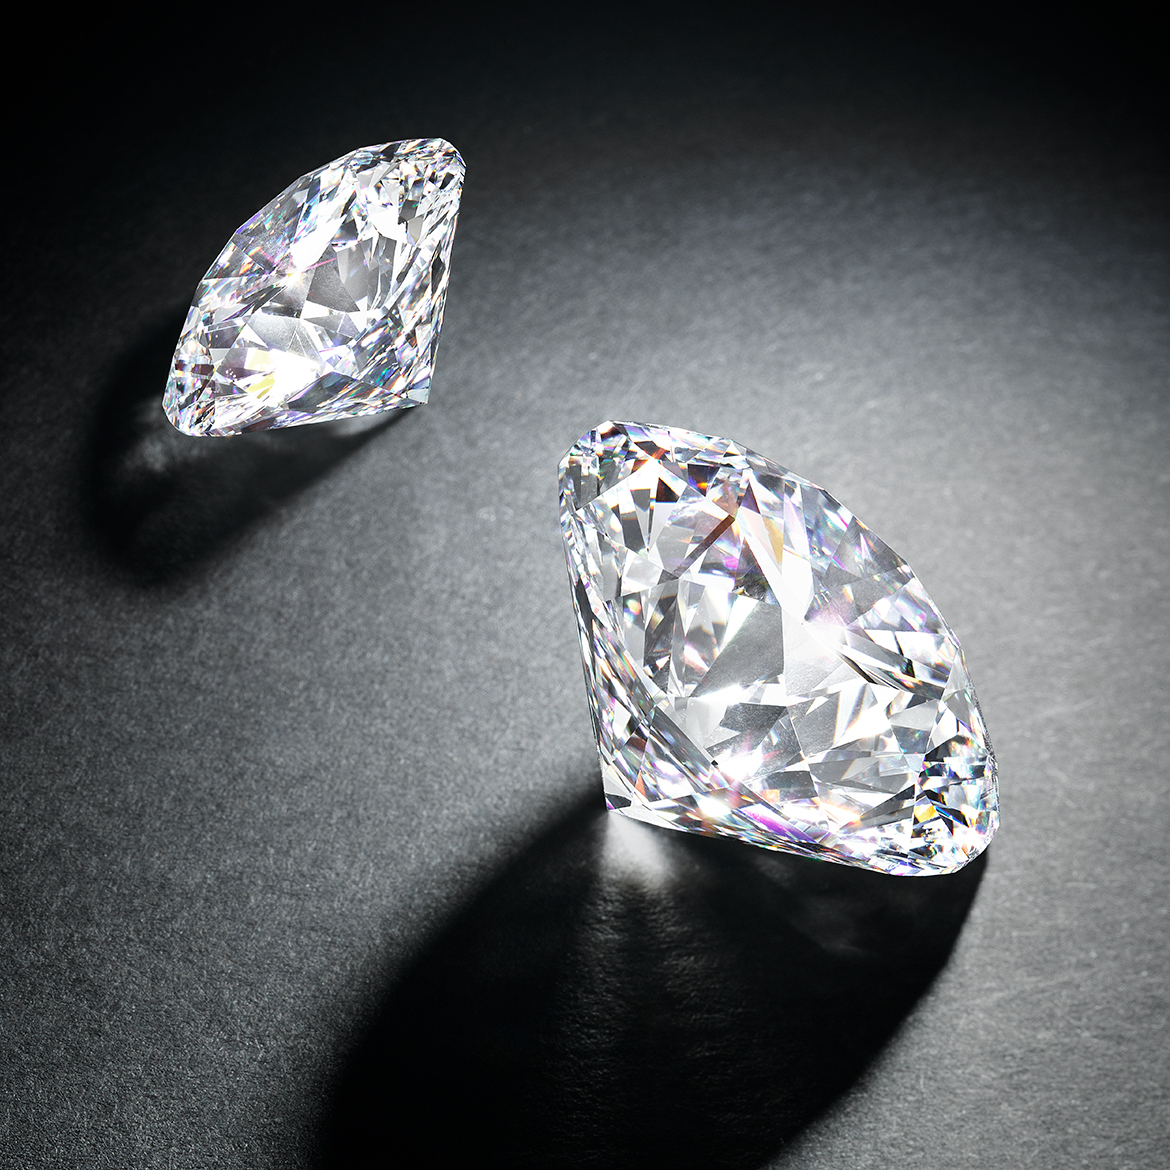 Loose Round Diamonds